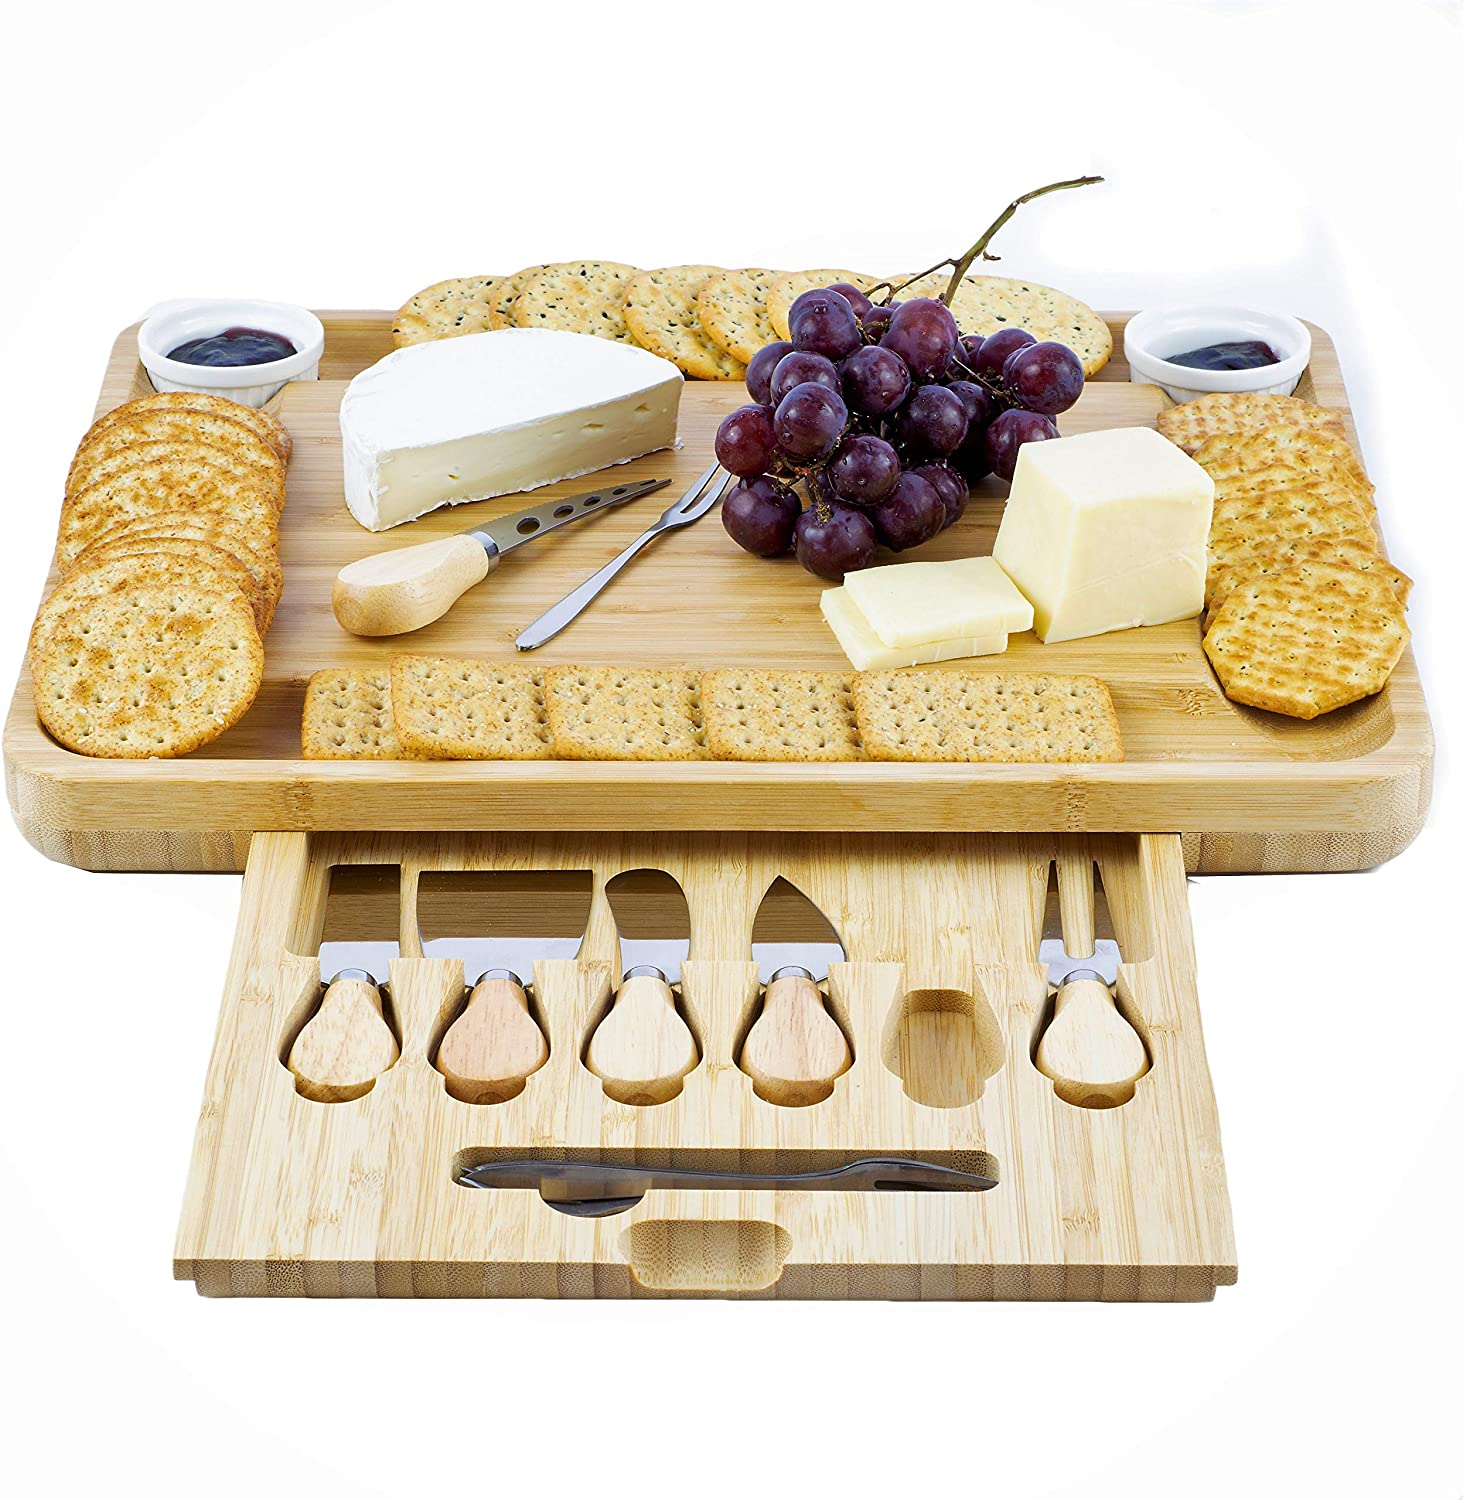 Bamboo Cheese Board and Knife Set - Charcuterie Platter with 6 Cutlery, 4 Forks, 2 Ceramic Bowls, Upgraded Magnetic Tray - Extra Large Wooden Serving Plate for Meats, Crackers, Dip, Fruit, Veggies